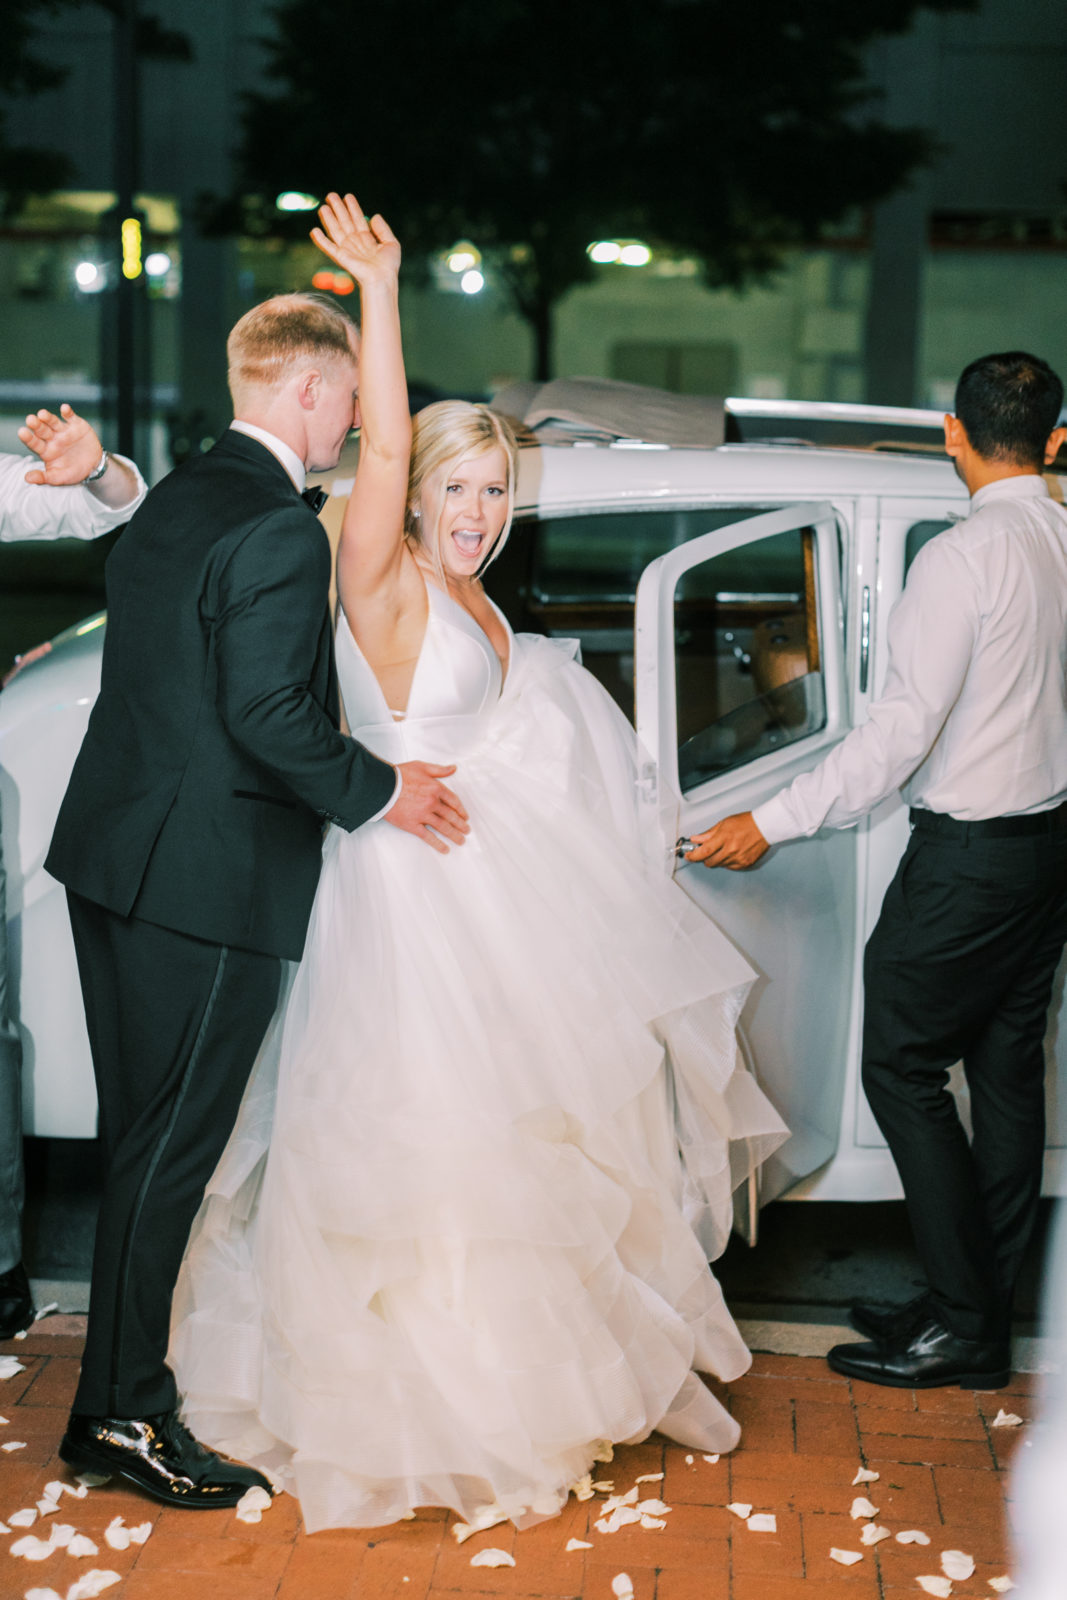 DFW wedding captured by Megan Kay Photography